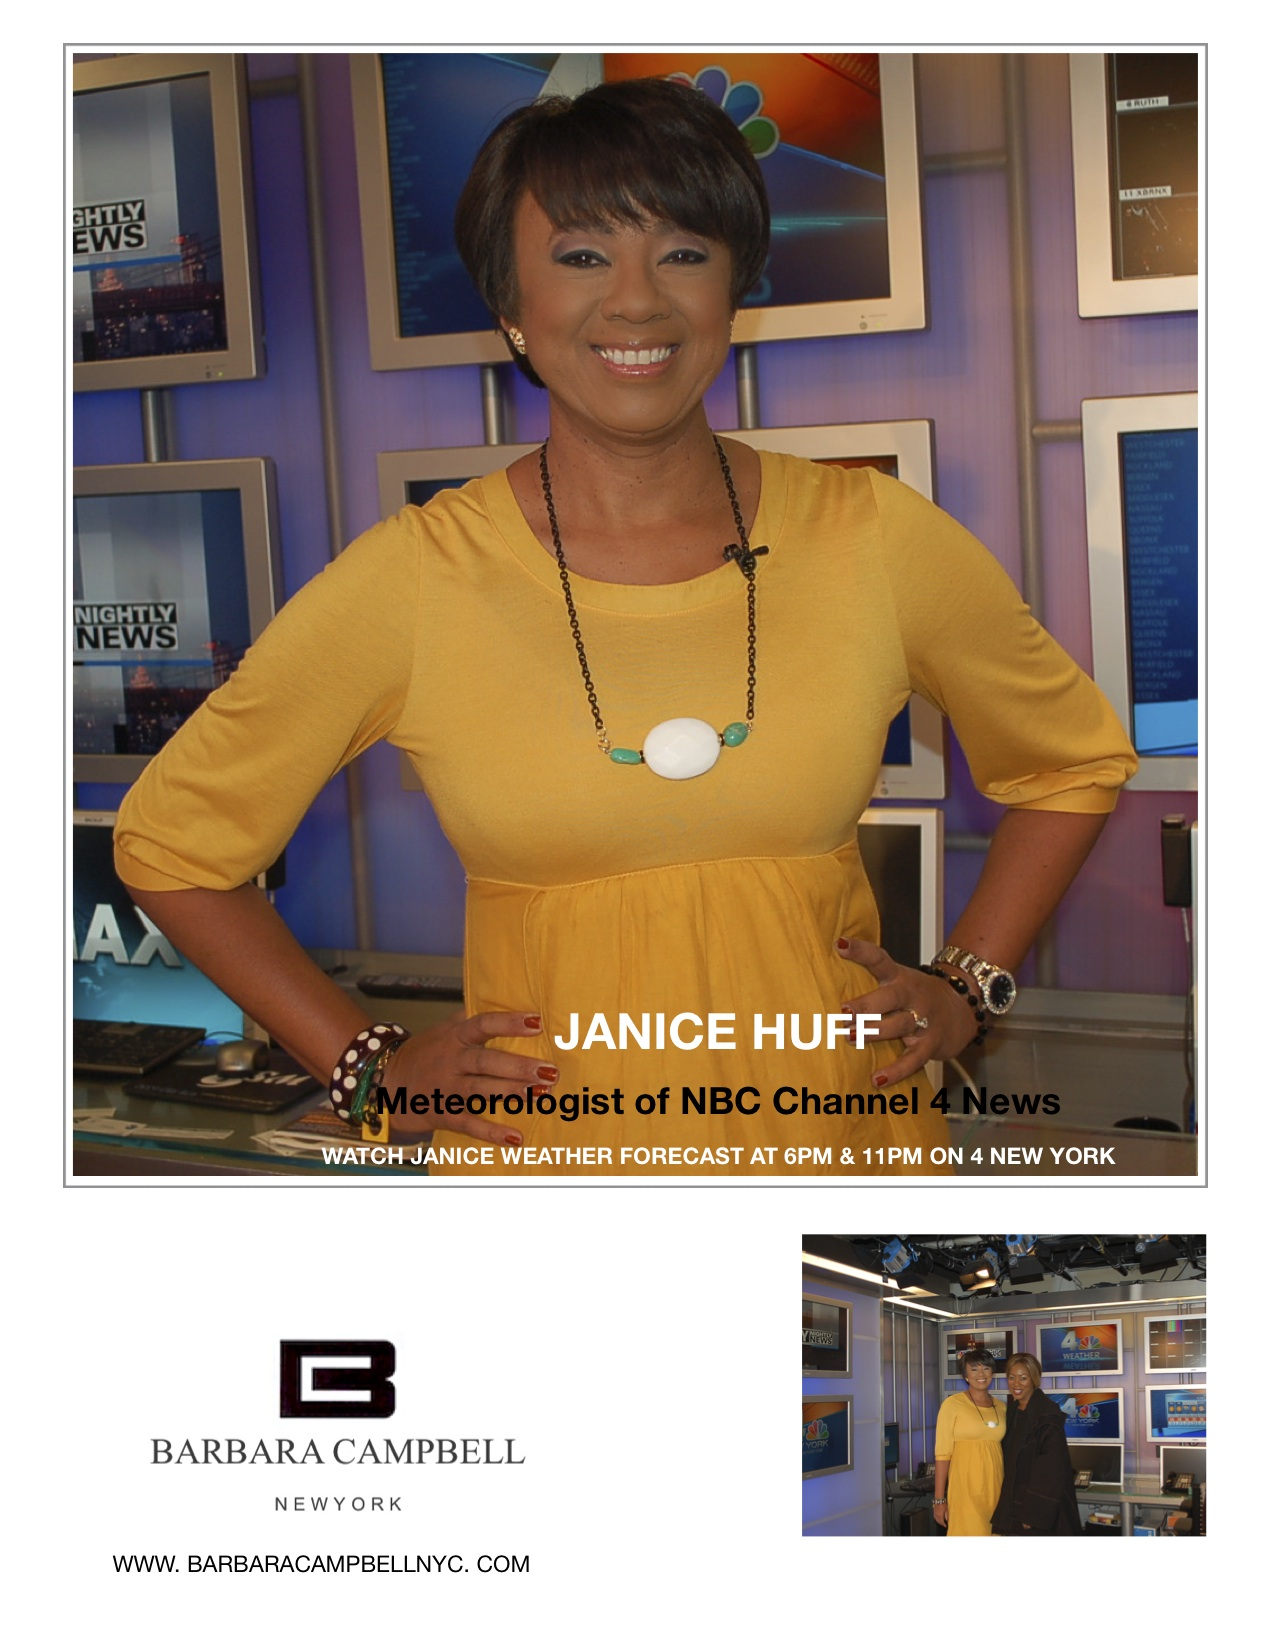 celebrity love barbara campbell jewelry Janice Huff.jpeg